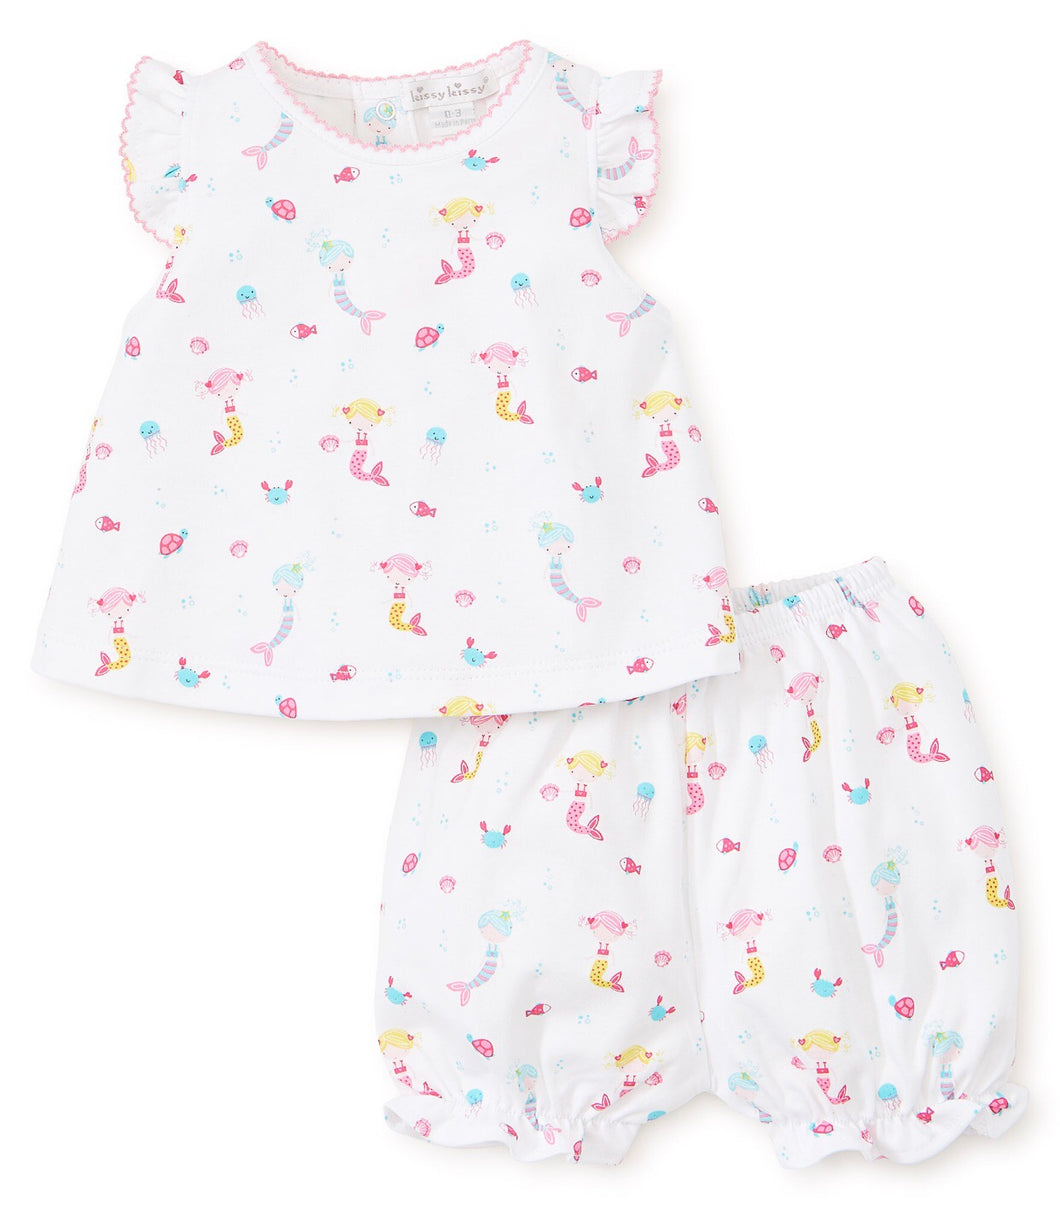 Mermaid Fun Sunsuit Set